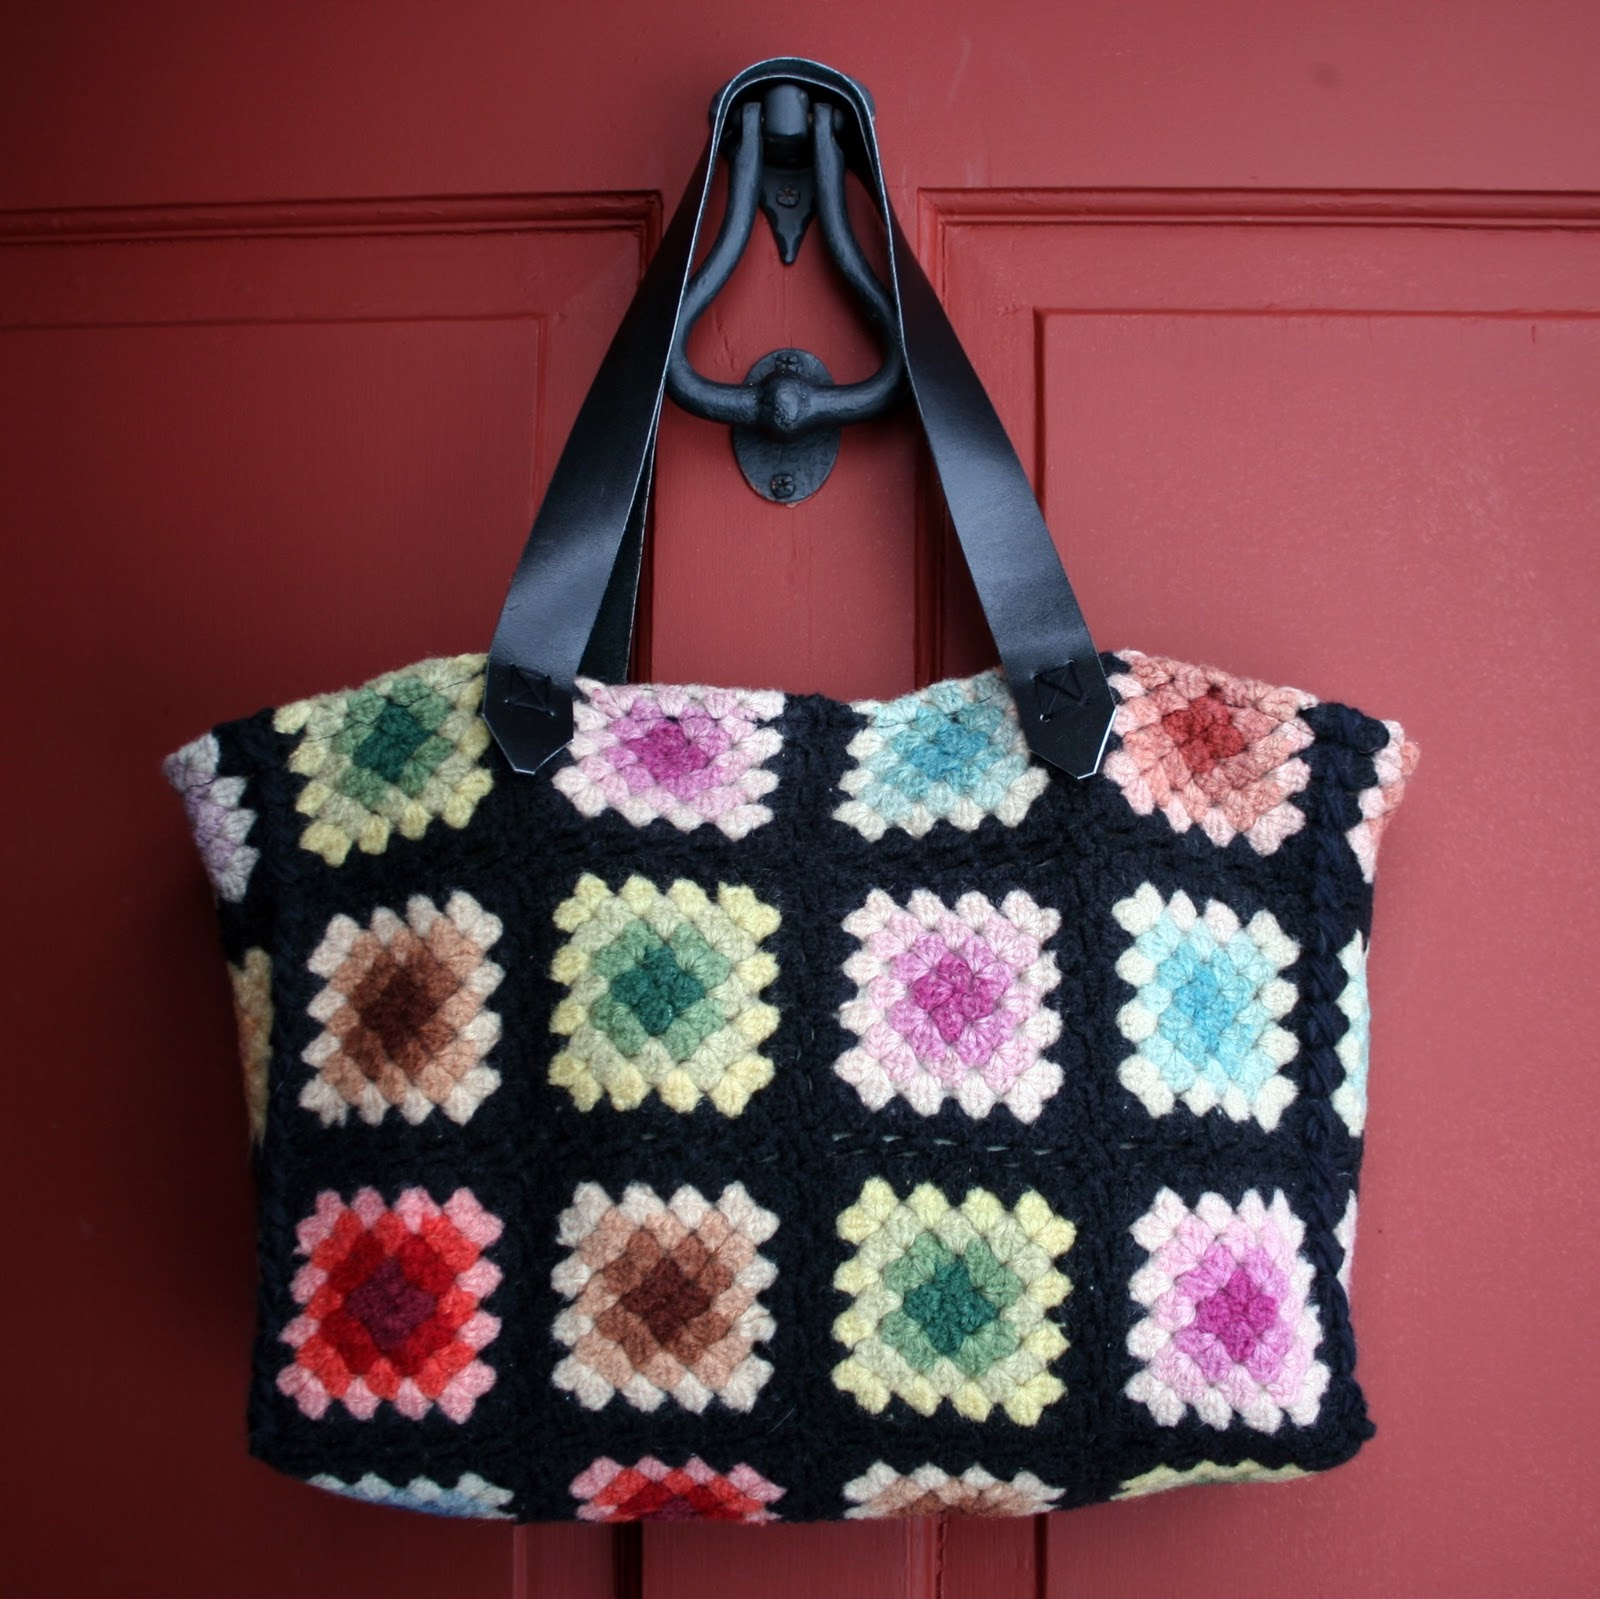 Granny Square Tote Bag : RagingWool: Granny Square tote bag is done!